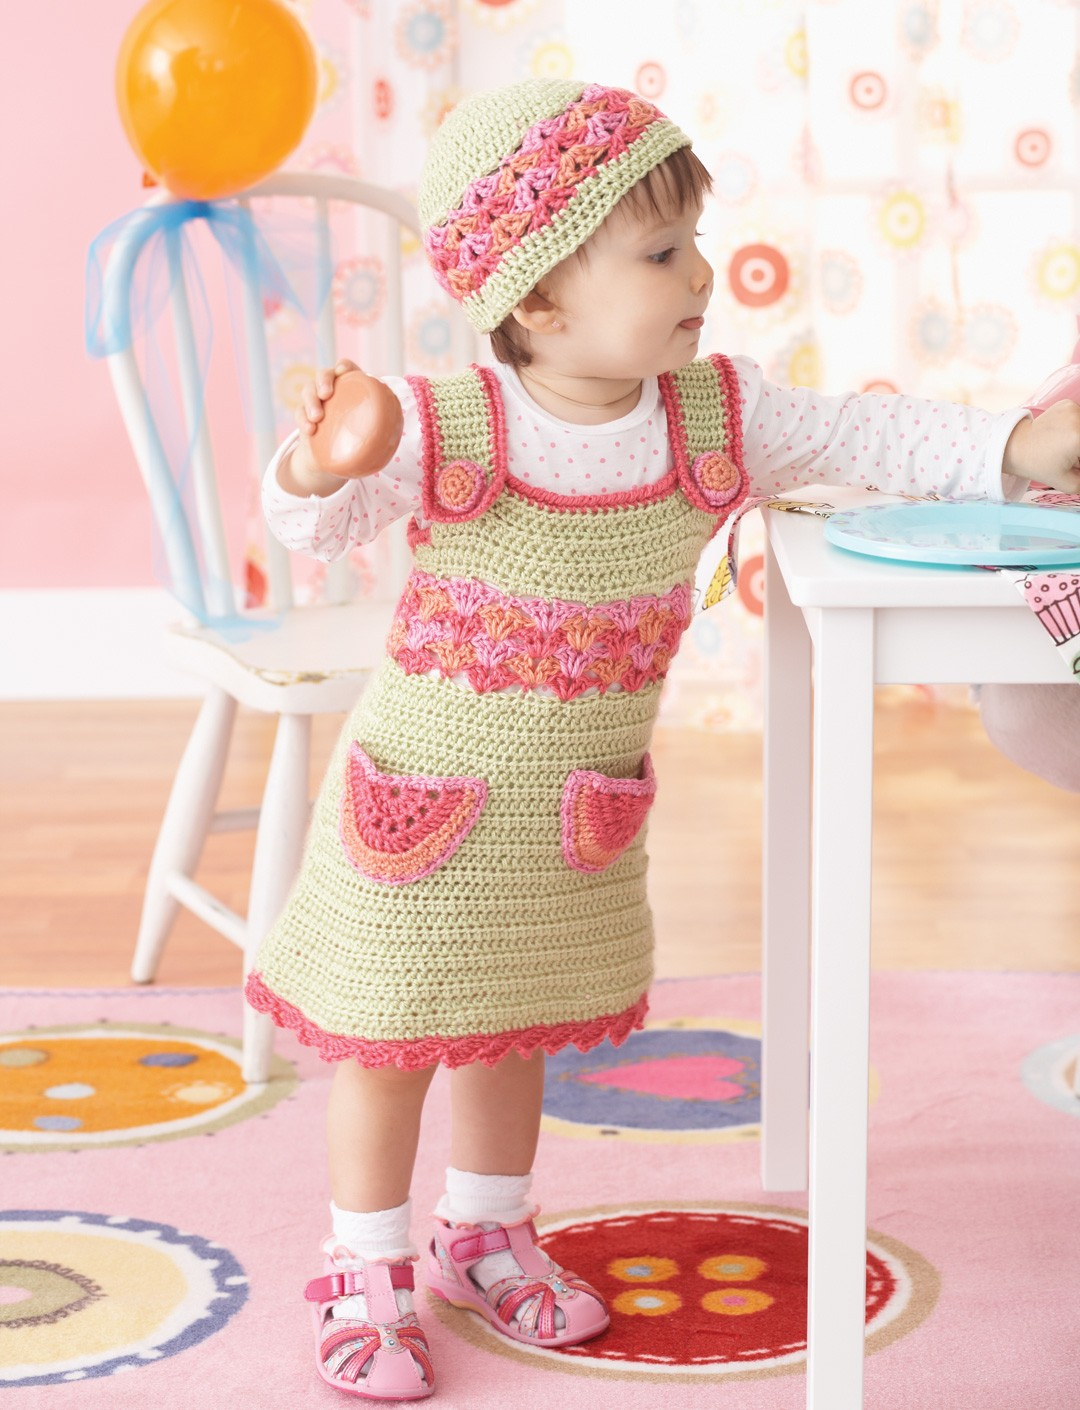 Juicy Slices Jumper Set